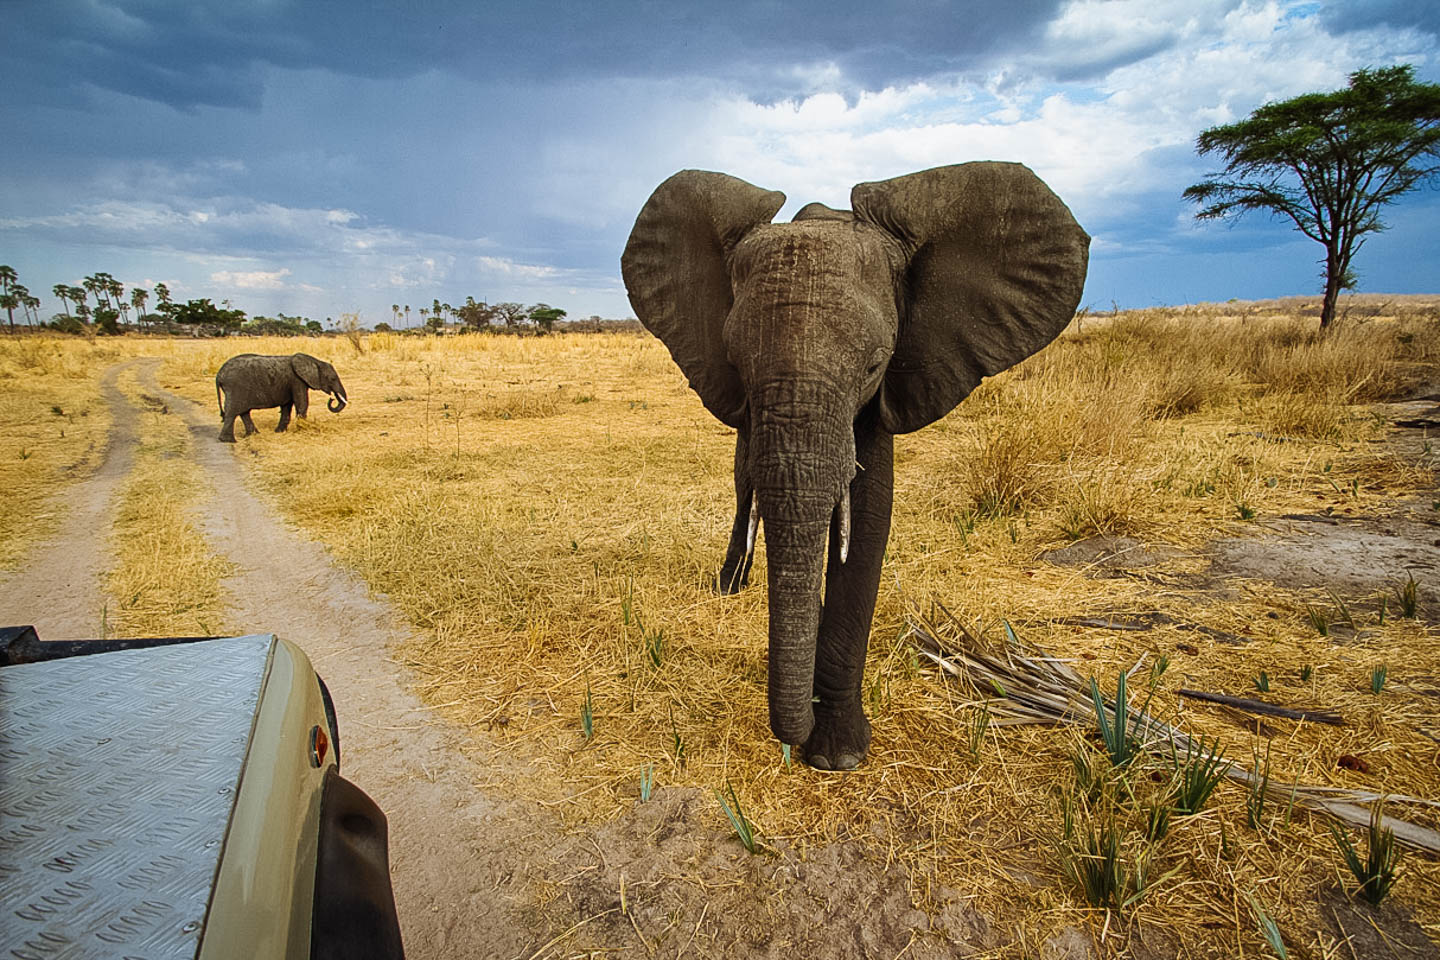 tanzania travel guide-ruaha-national-park-game-drive-wildlife-elephants-timbuktu-travel